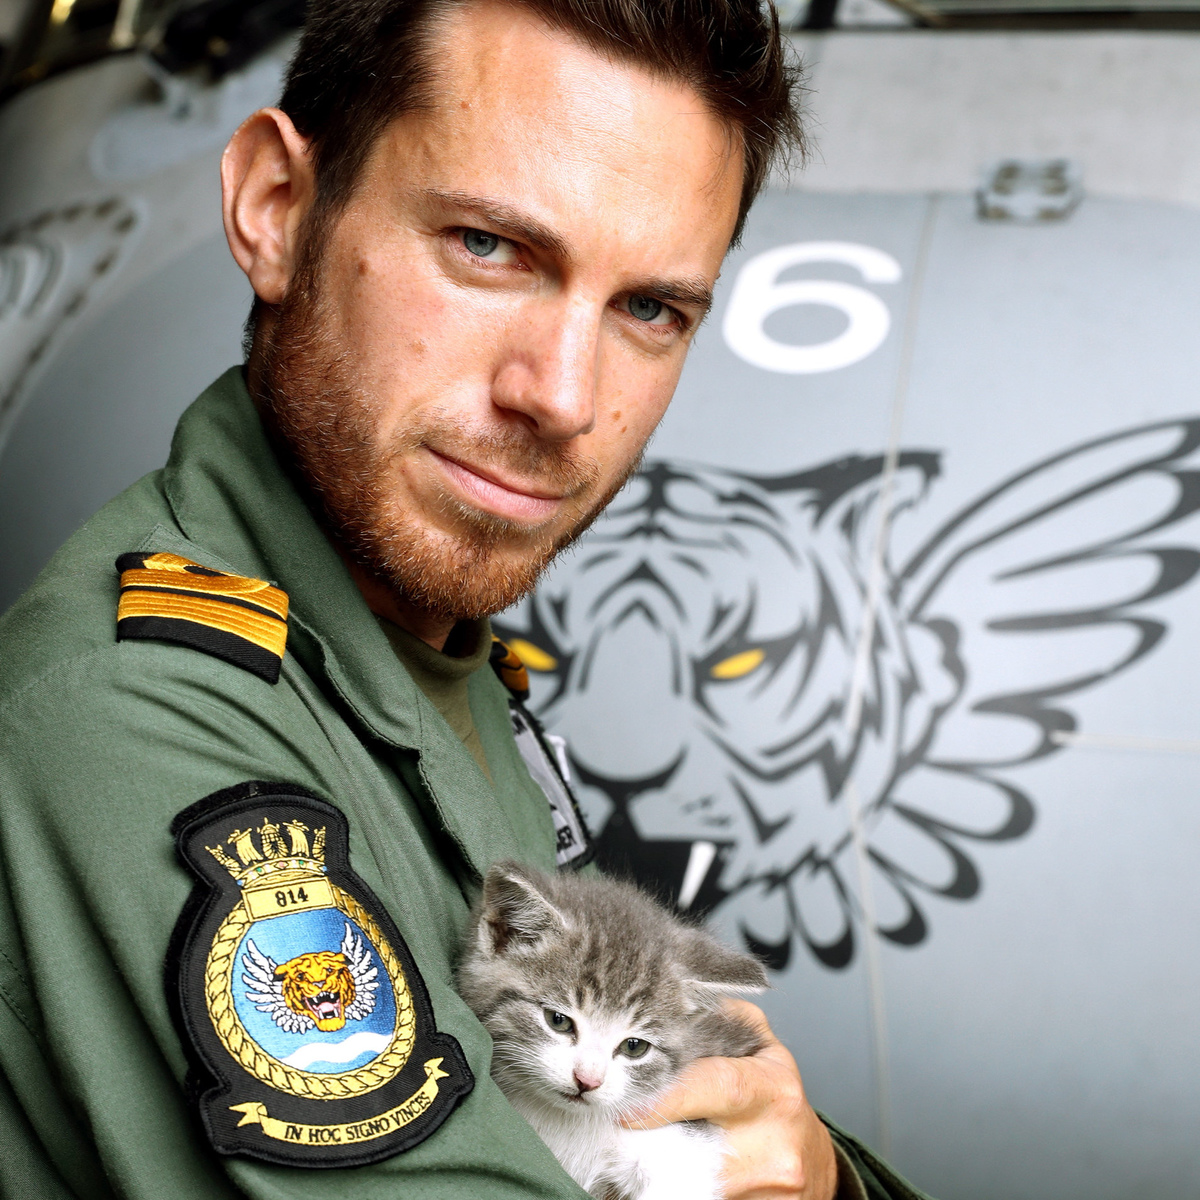 "Nick Grimmer with Tigger the kitten. See SWNS story SWKITTEN. Meet Tigger – the kitten which survived a 300-mile journey hiding INSIDE the bumper of a navy helicopter pilot's car. The cat endured a day's journey from Birmingham Airport to the Royal Naval Air Station Culdrose near Helston in Cornwall clinging to the rear bumper of Lieutenant Nick Grimmer's BMW. It was only the day after the epic journey that 32-year-old Nick heard ""very quiet meowing"" coming from his car – and began to investigate. ""I'd landed at Birmingham after a holiday and travelled via Bristol and Bath before arriving in Cornwall quite late,"" said Nick, who flies submarine–hunting Merlin helicopters for a living with 814 Naval Air Squadron – known as the Flying Tigers. ""I looked in the boot, under the bonnet and climbed all over and under it and still couldn't find what was making the noise. ""I called up some of our air engineers who came and helped me to start dismantling my pride and joy. On taking off the rear bumper we were greeted by a tiny tiger-striped kitten. ""He must have had a long journey but remarkably is unharmed. I am never late for work and was left with no option but to take my new friend in with me. The place he has felt most comfortable is in my flying helmet, which is the only place he is able to sleep."""